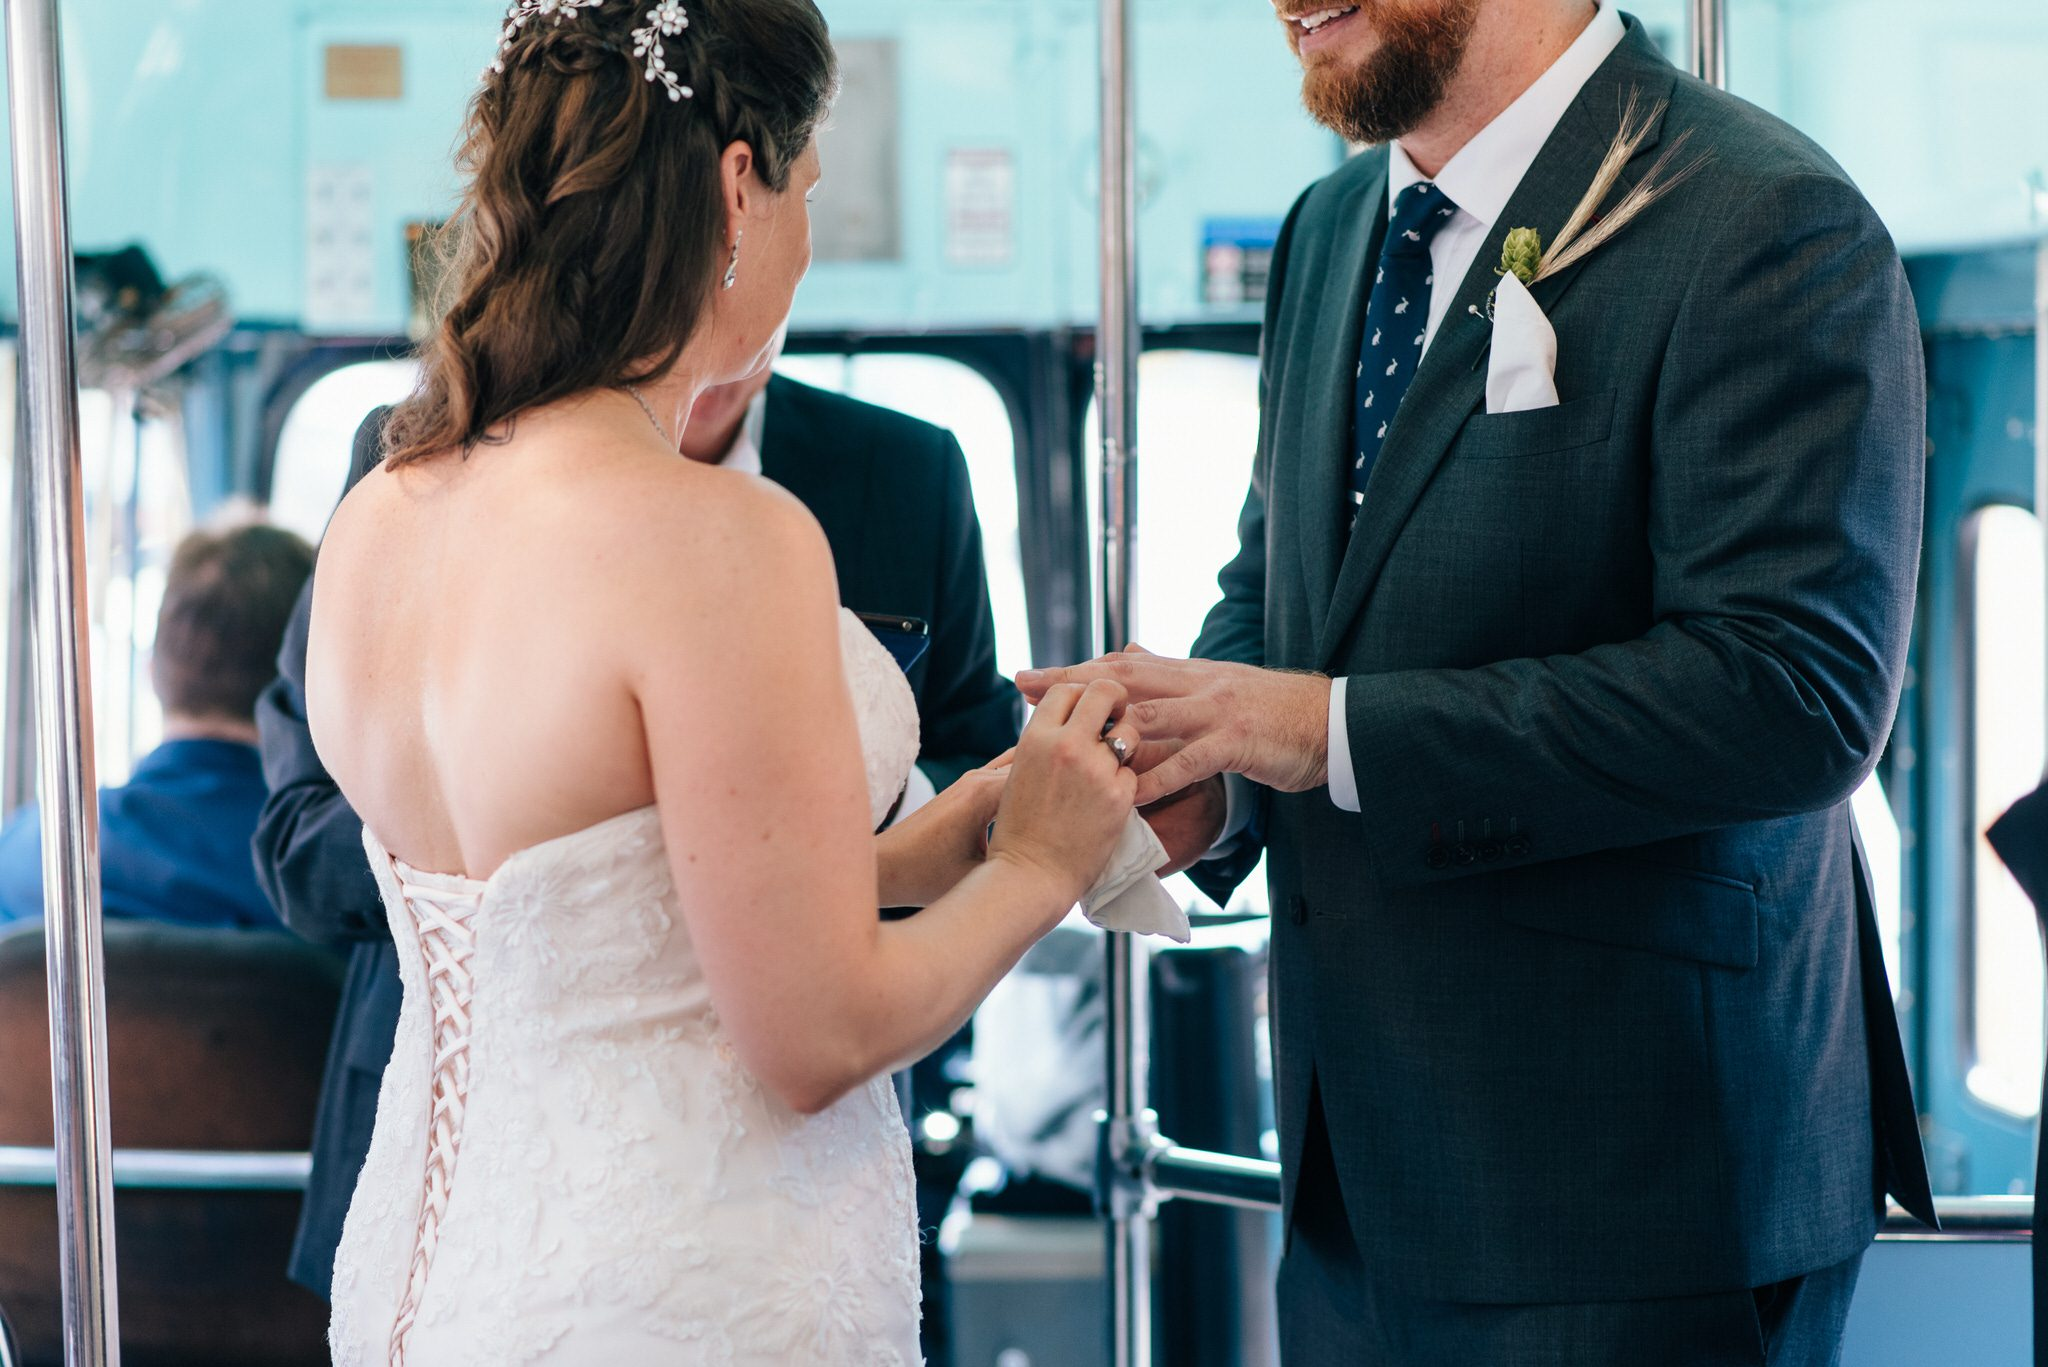 The bride and groom exchange rings during their Vintage Toronto Streetcar Wedding Ceremony